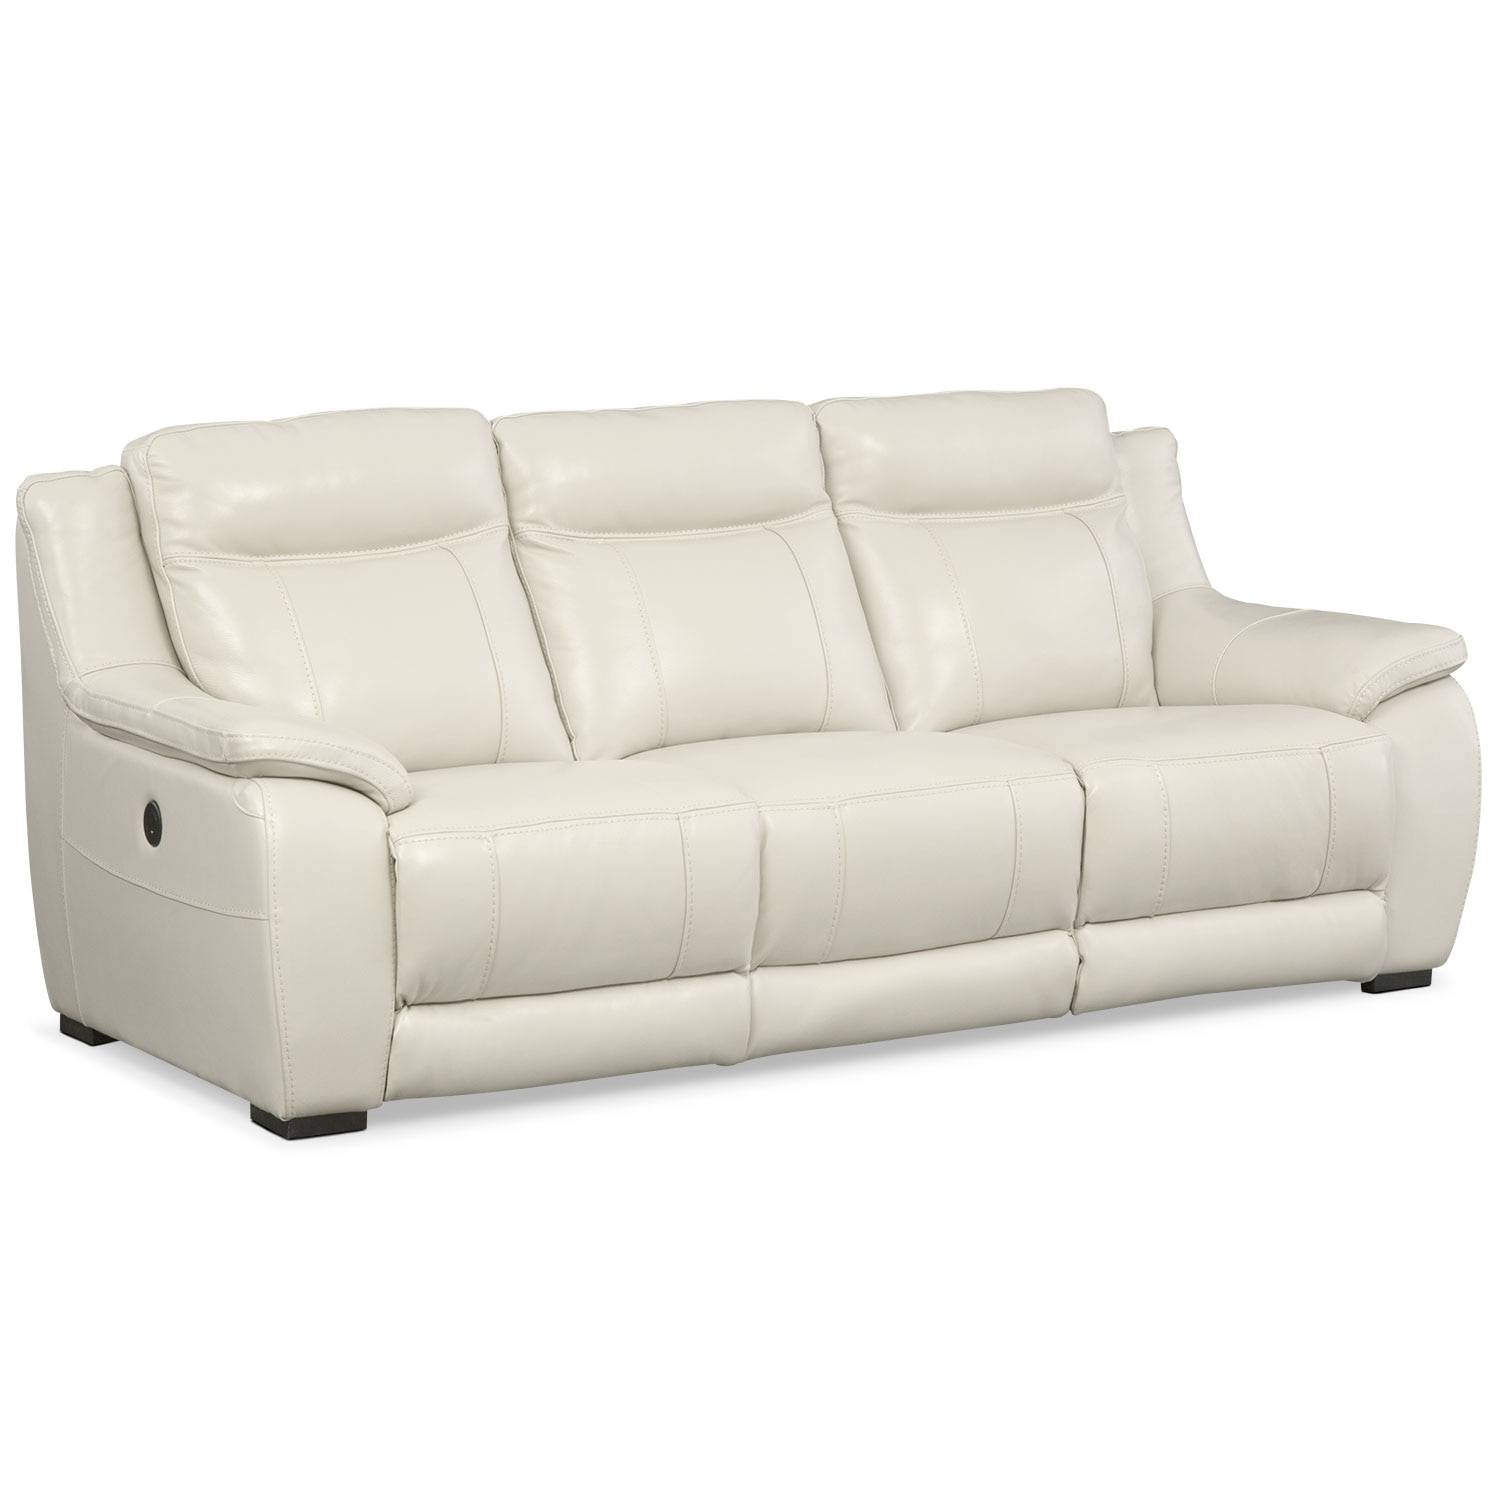 Sofas & Couches | Living Room Seating | American Signature Furniture for Comfortable Sofas And Chairs (Image 20 of 30)